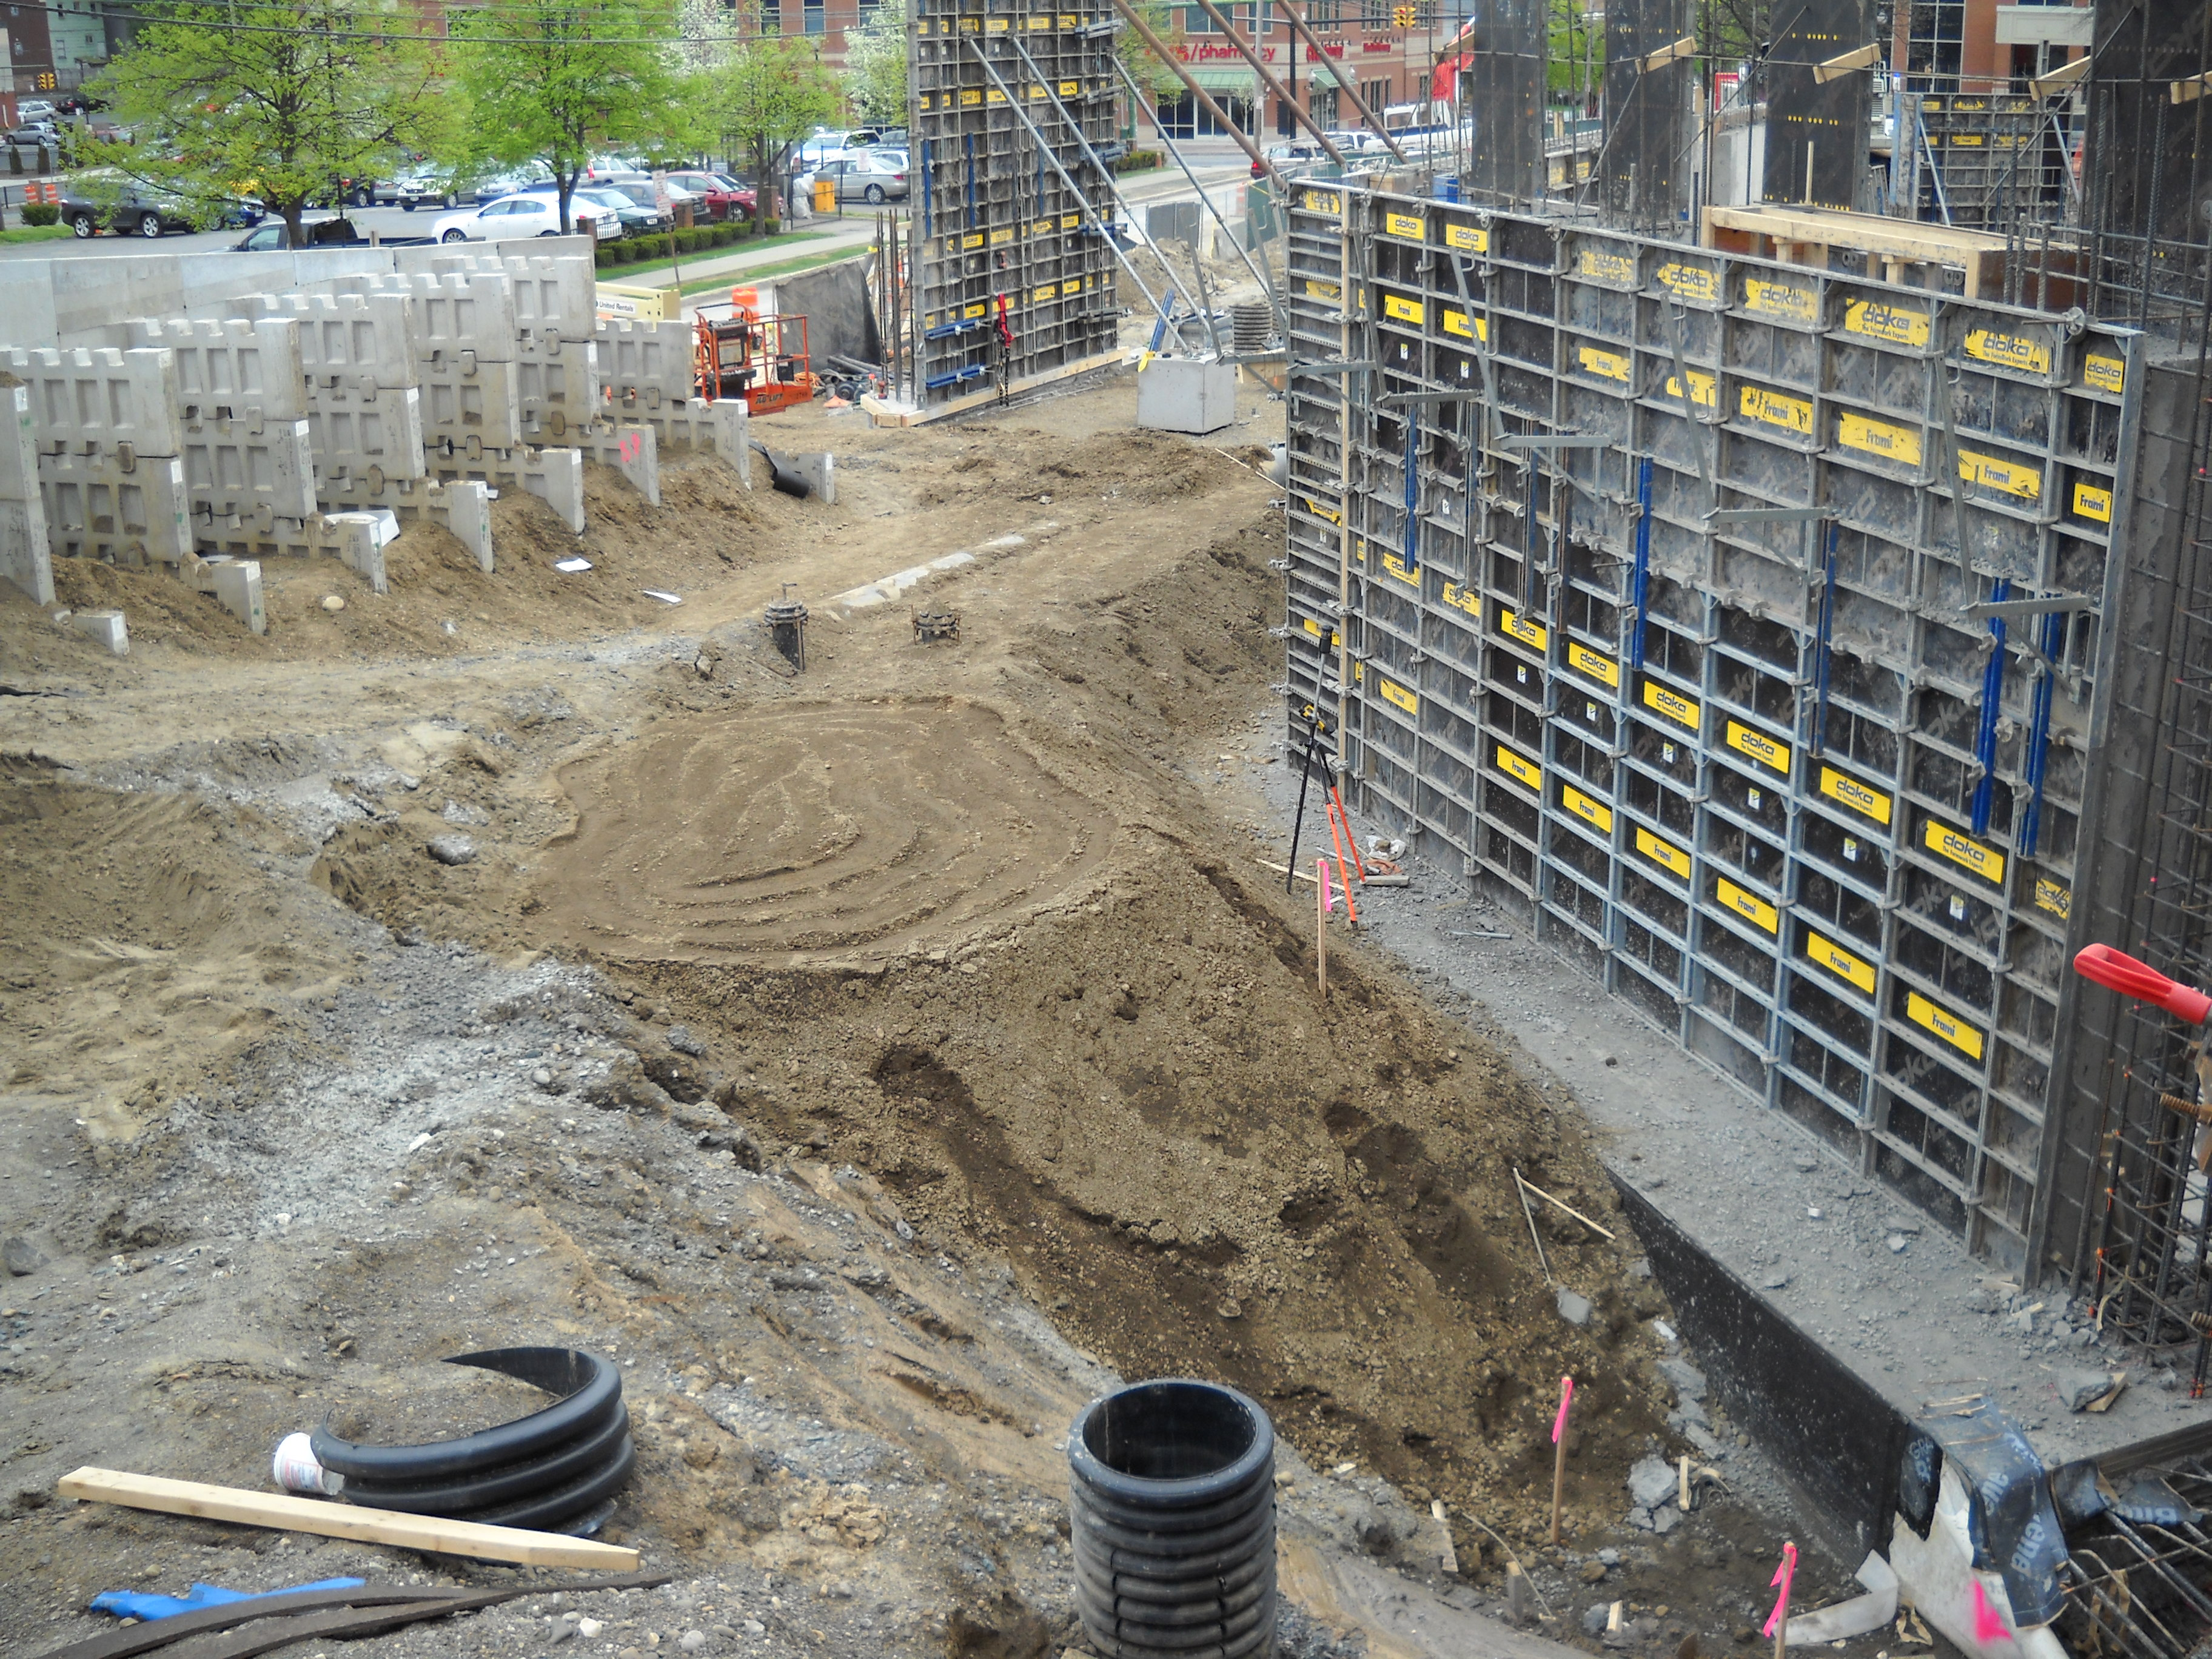 John P. Stopen Albany Medical Center Healthcare Project expansion